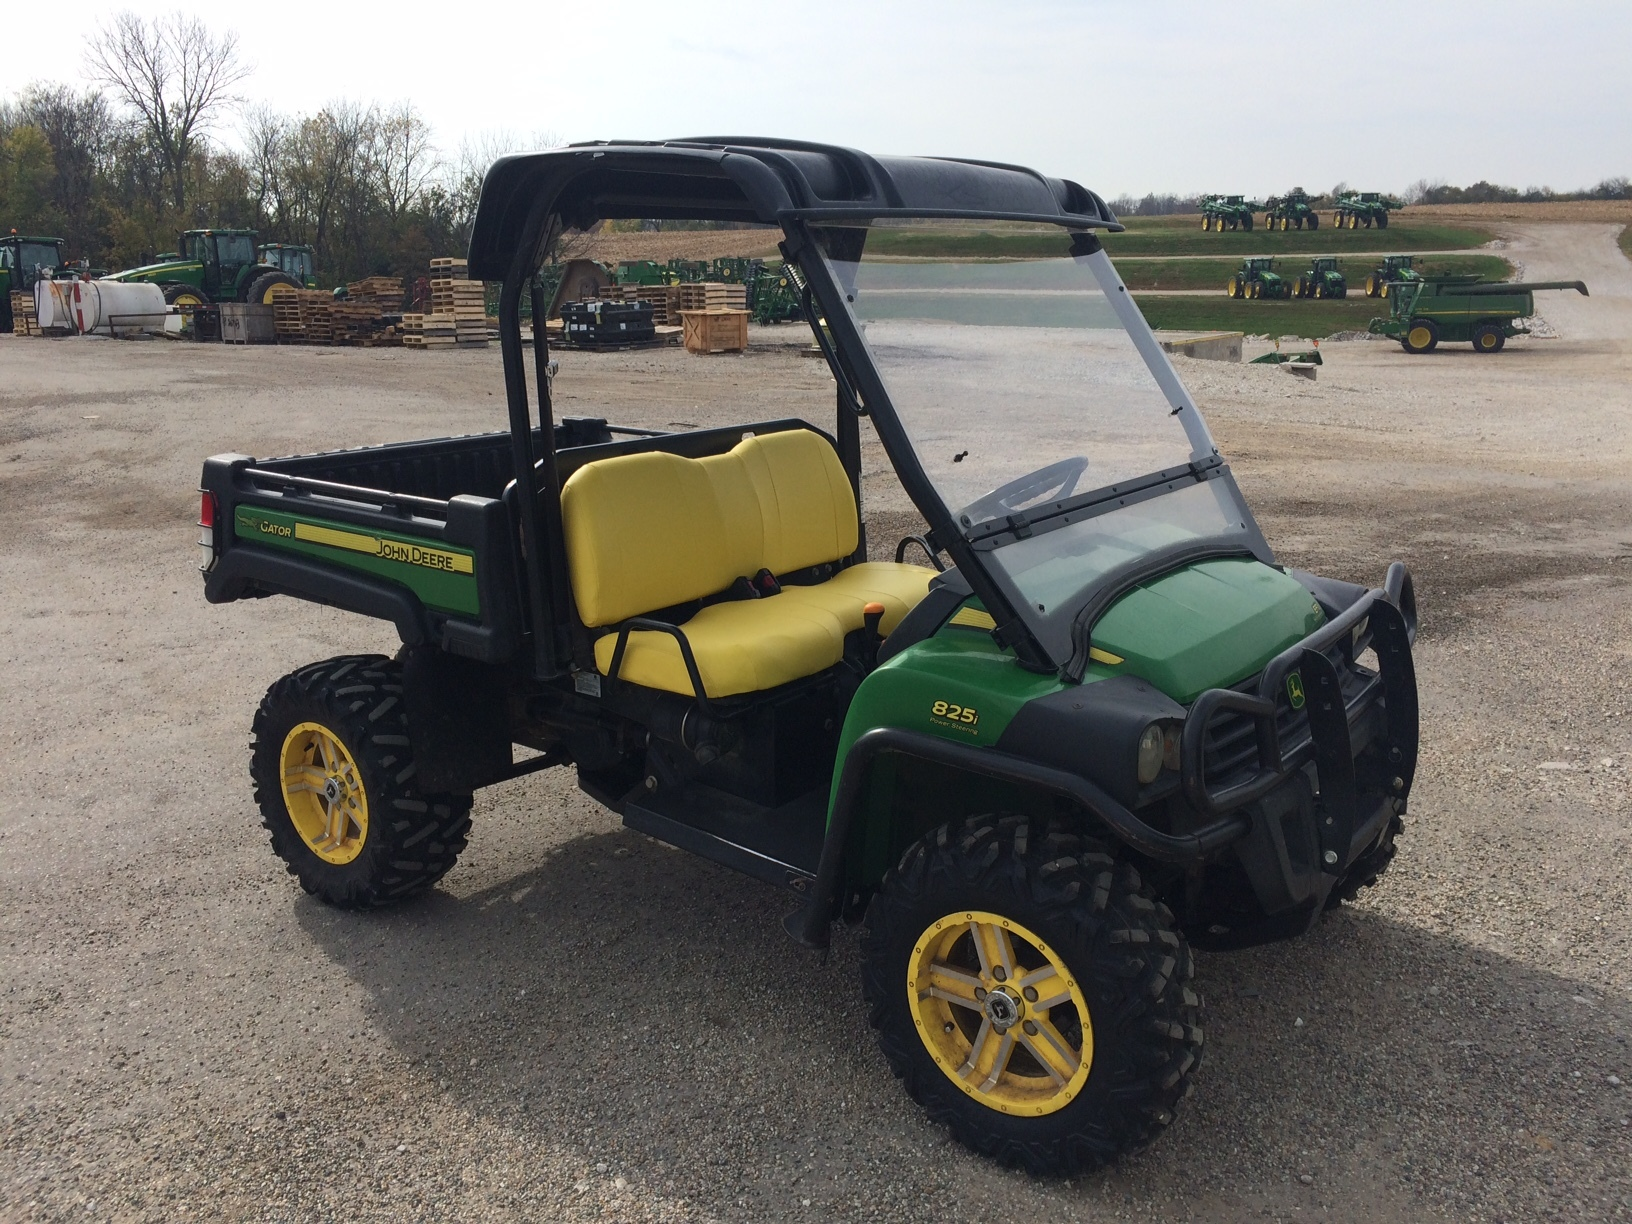 john deere xuv 825i green atvs gators for sale 65016. Black Bedroom Furniture Sets. Home Design Ideas